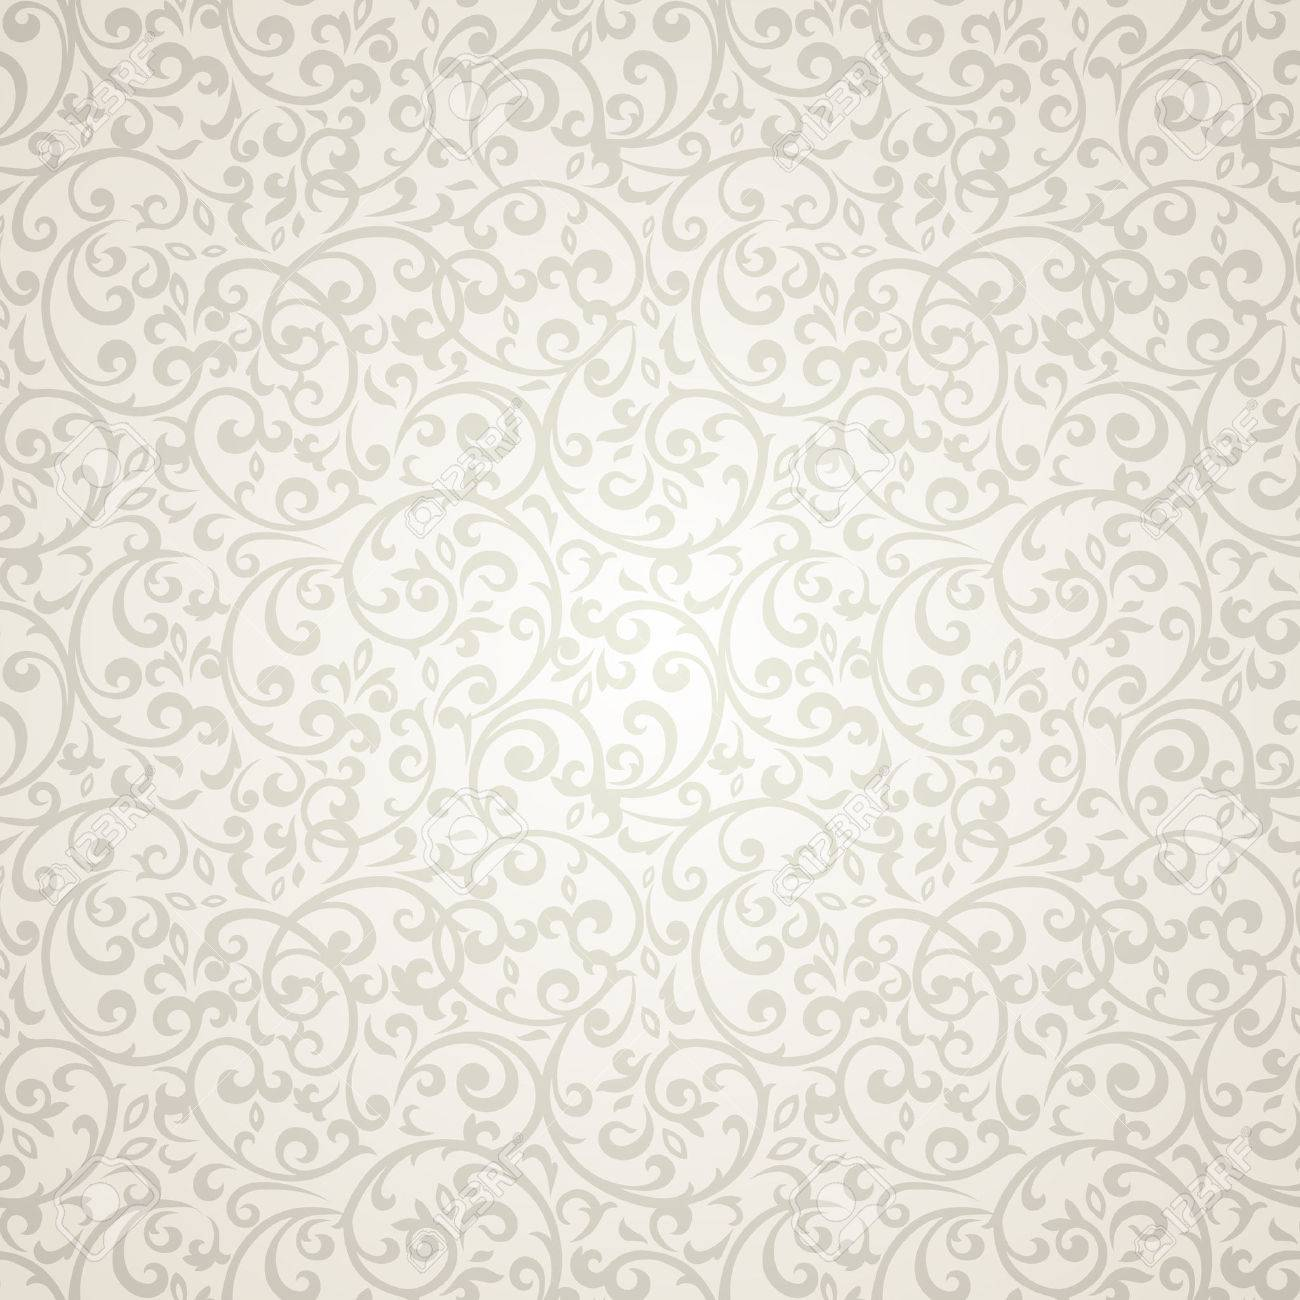 Vintage seamless pattern with lot of detailed elements. - 45582446